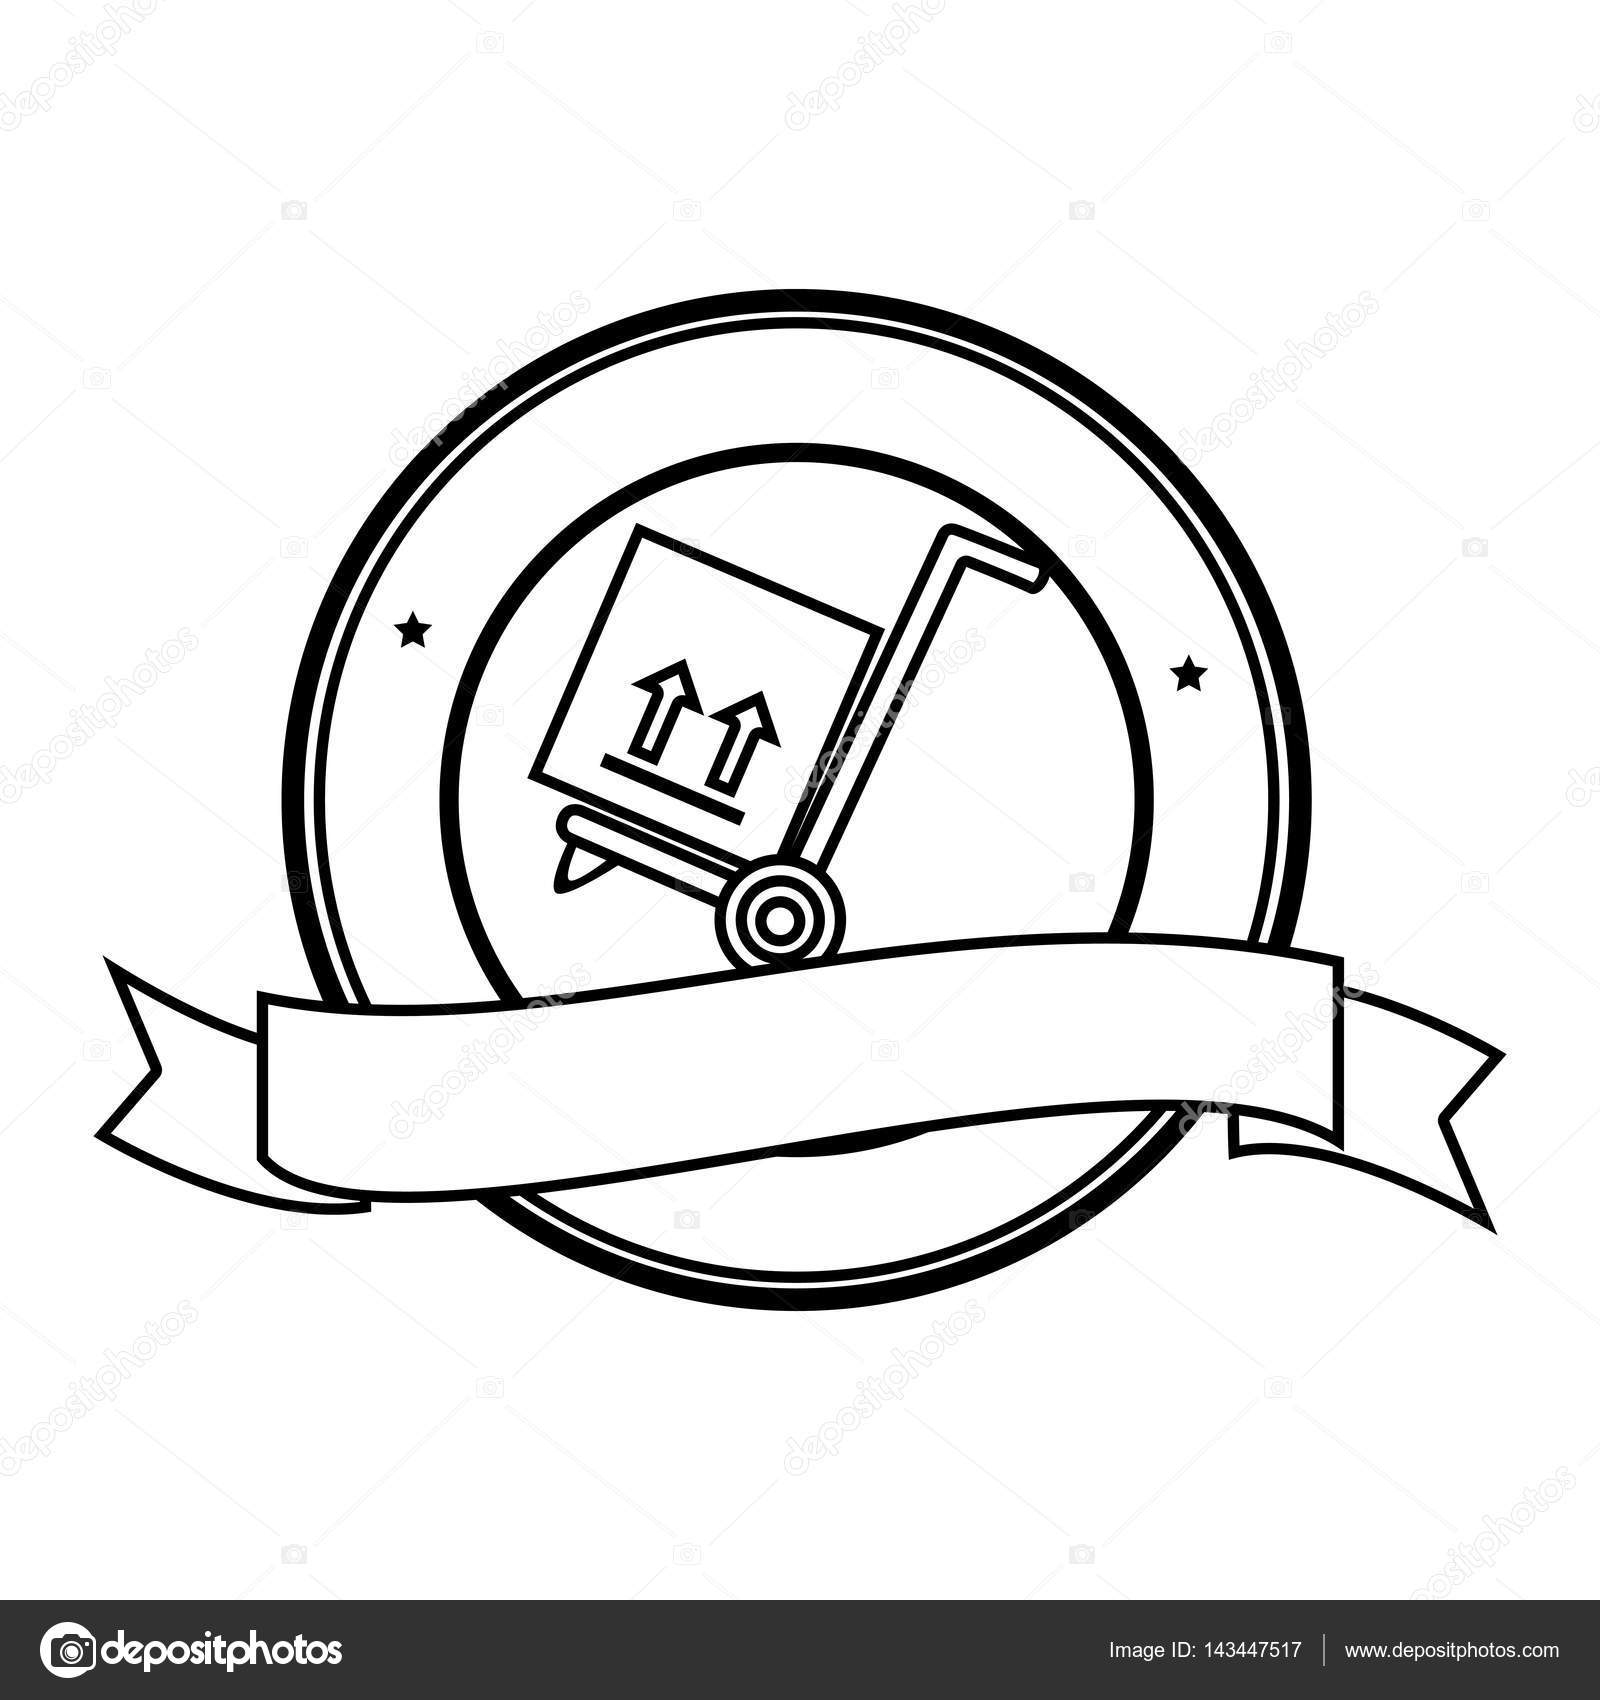 1600x1700 monochrome circular contour emblem with ribbon and hand truck with